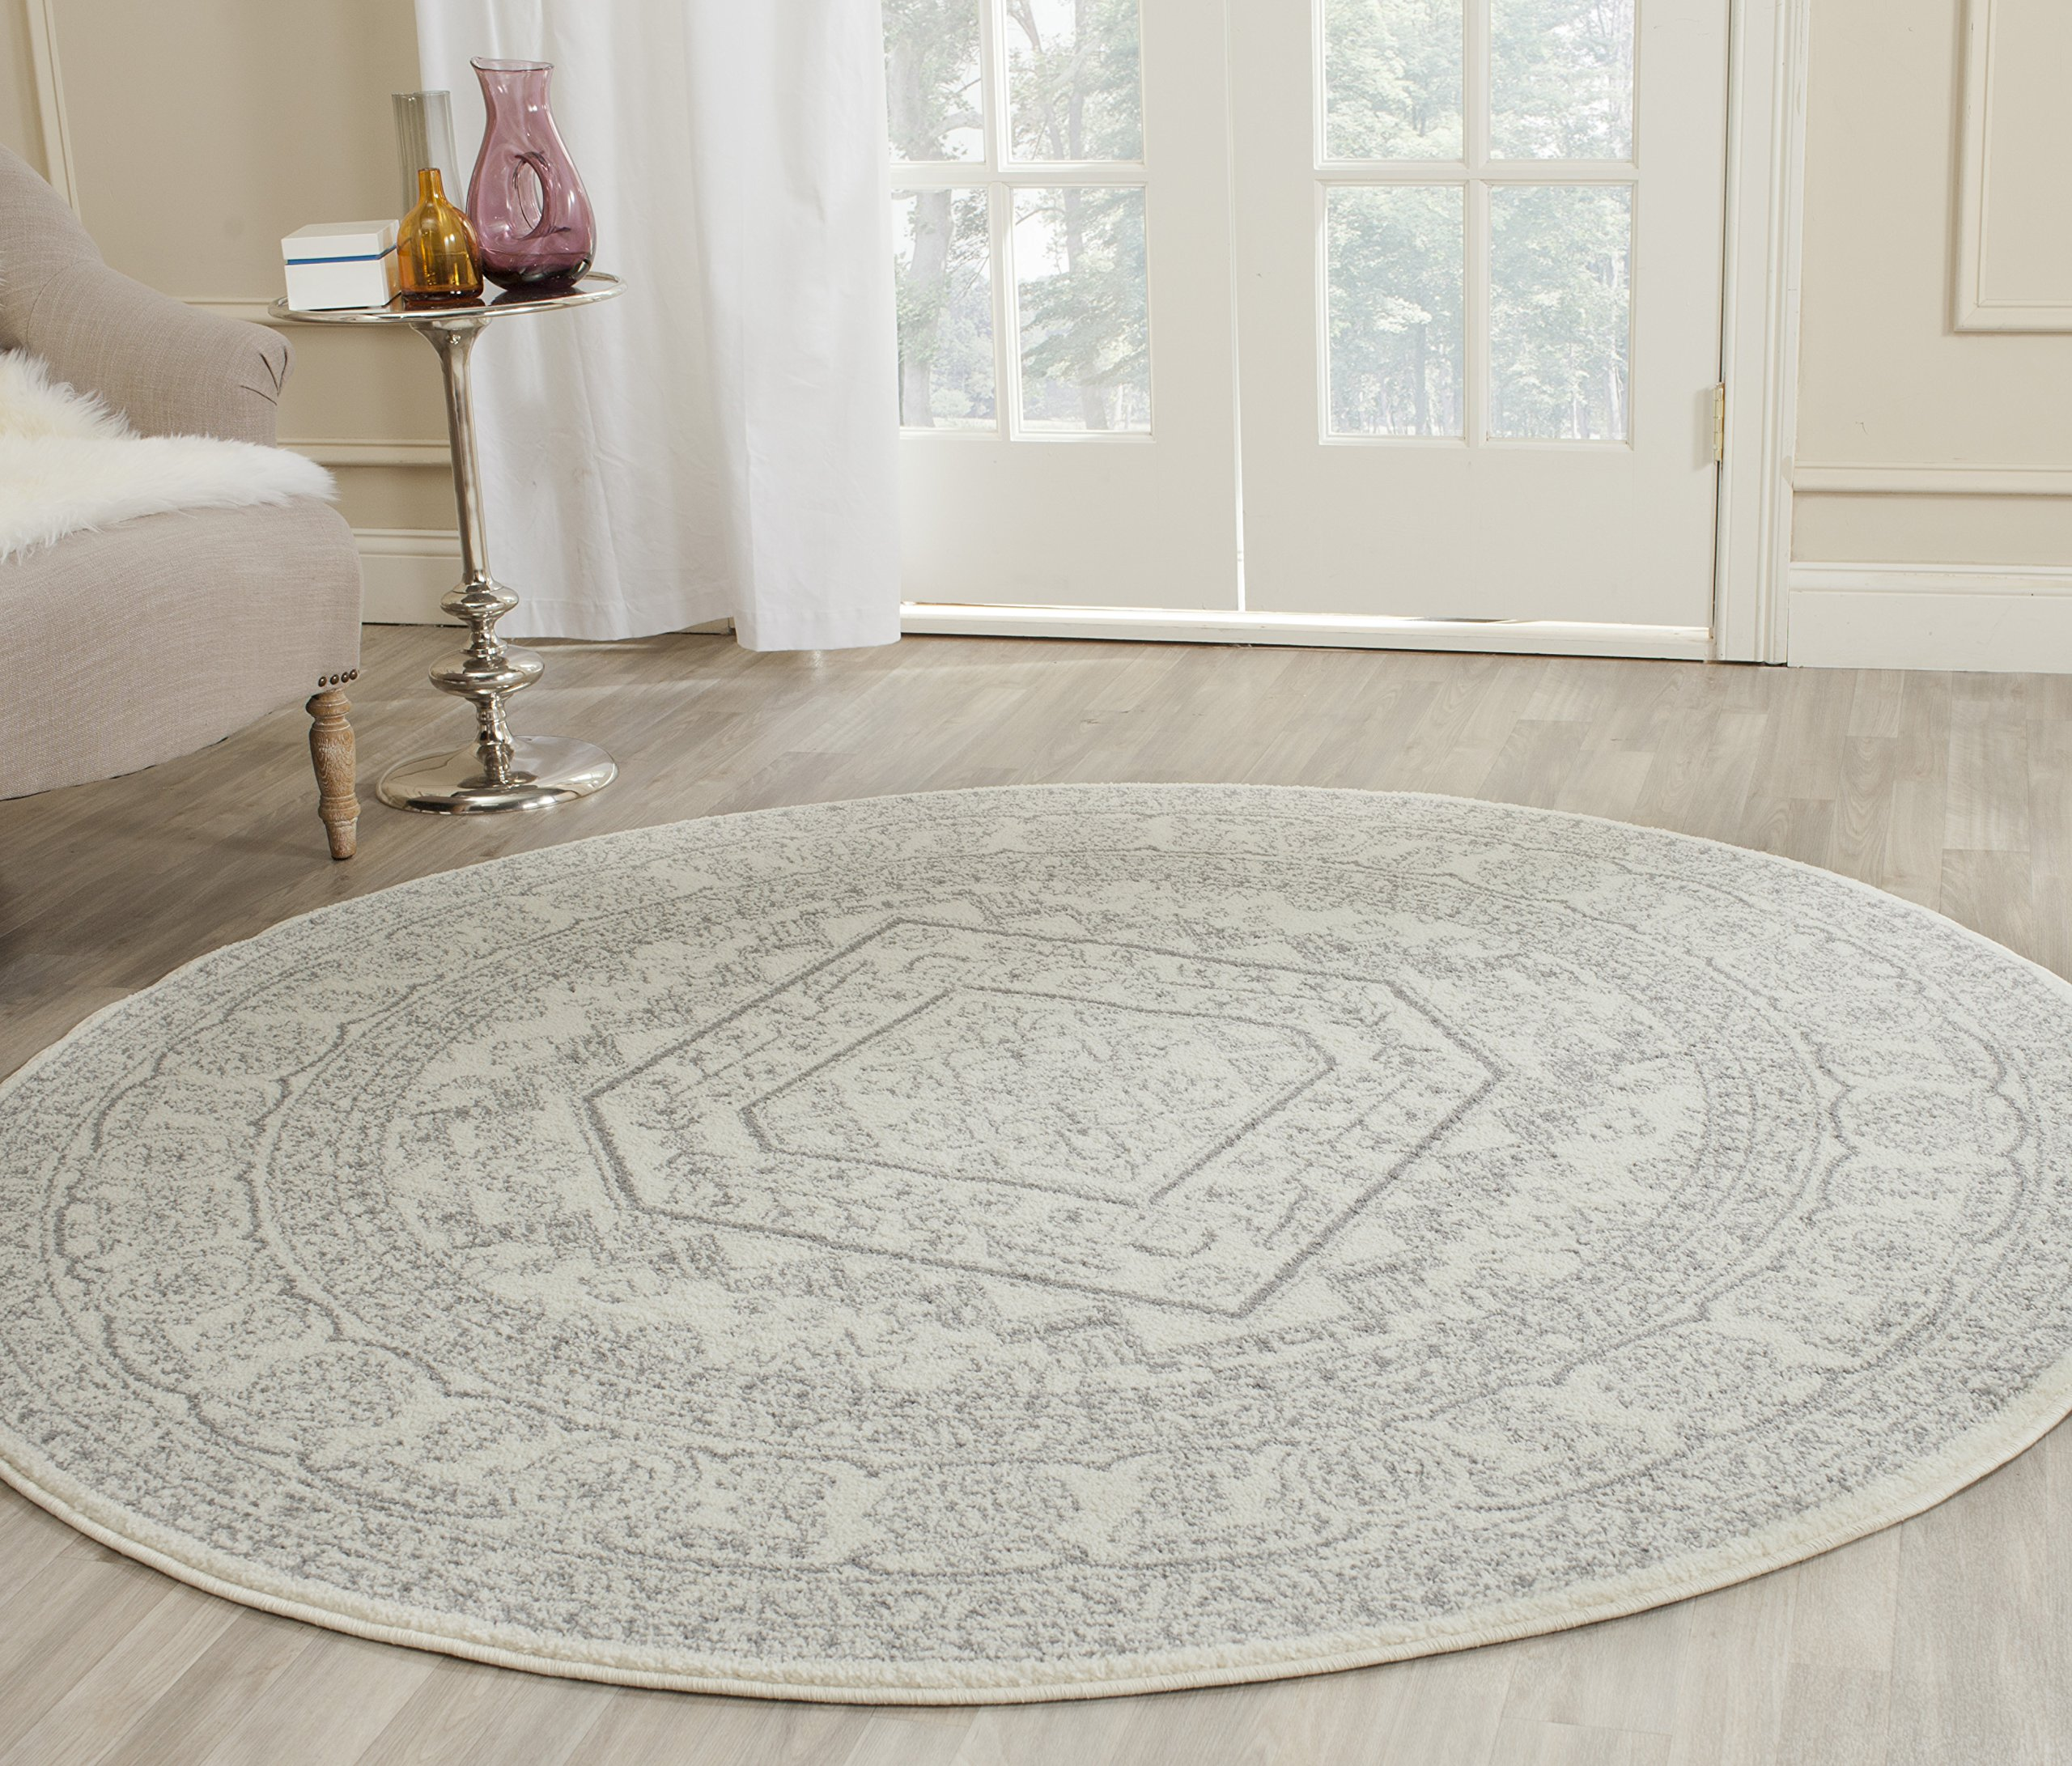 Safavieh Adirondack Collection ADR108B Ivory and Silver Oriental Vintage Medallion Round Area Rug (4' Diameter) by Safavieh